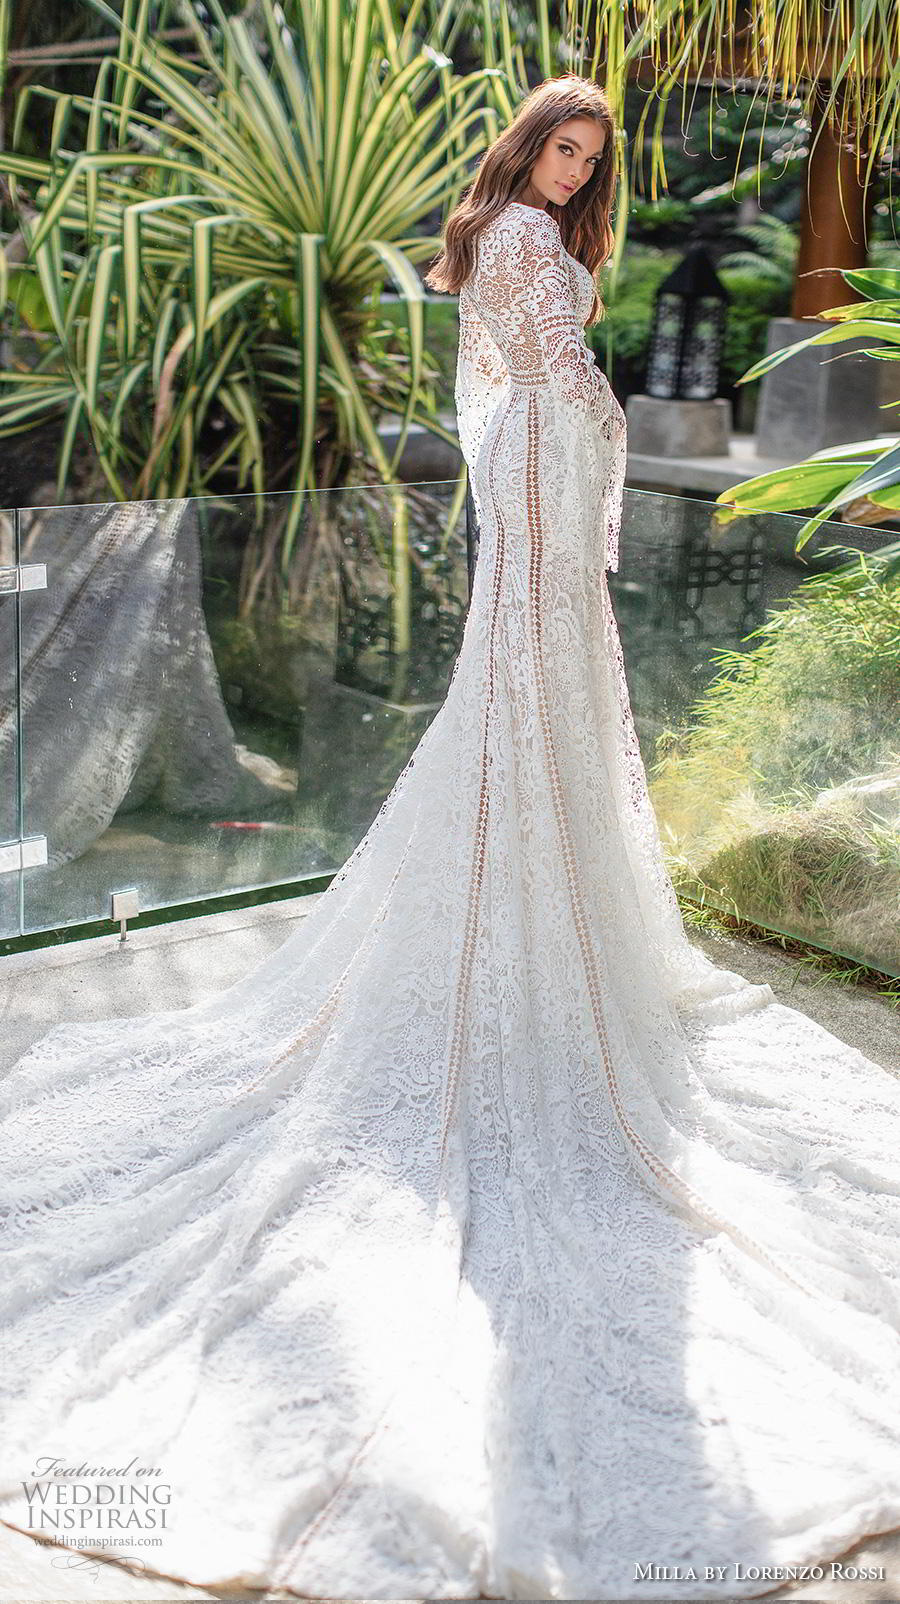 lorenzo rossi 2019 milla bridal long bell sleeves v neck full embellishment elegant bohemian fit and flare wedding dress covered lace back royal train (20) bv